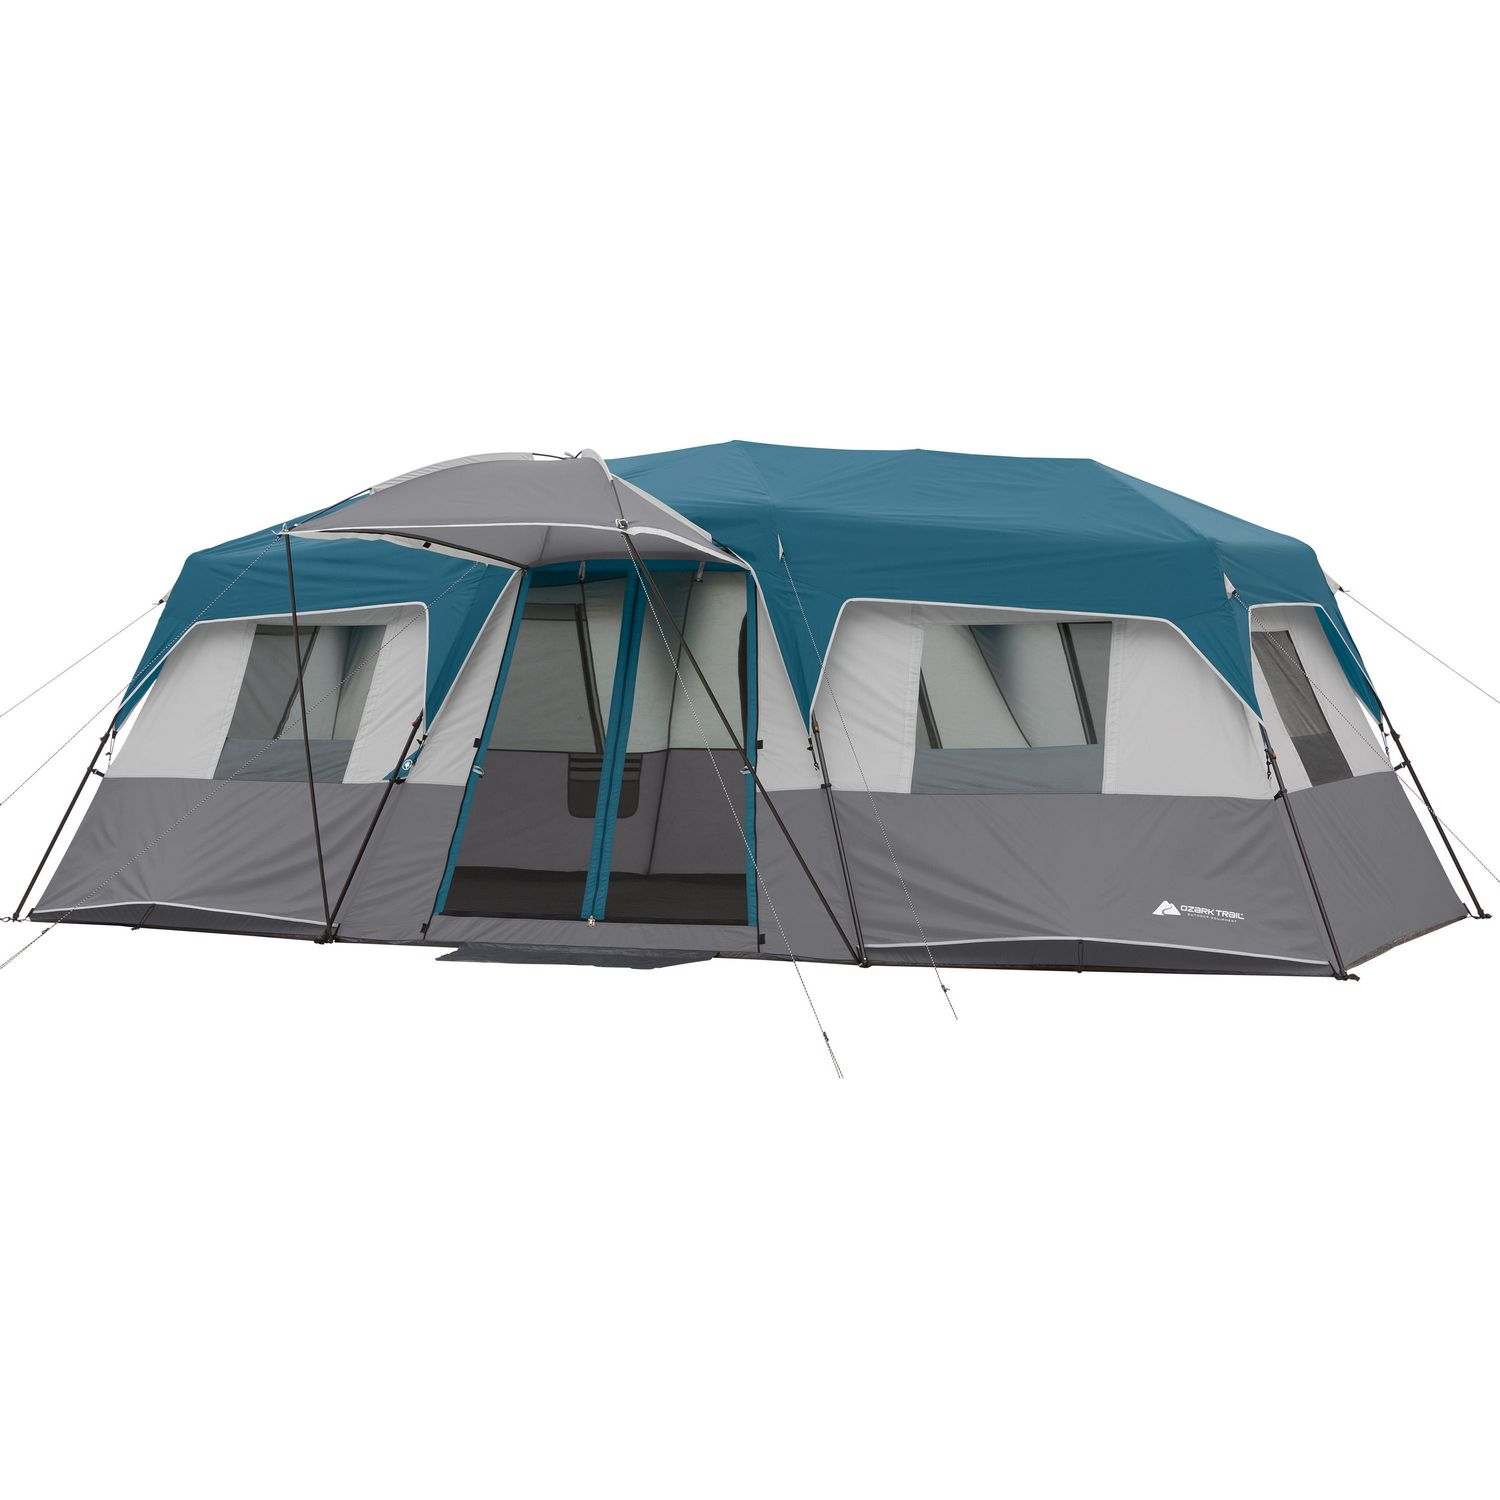 Ozark Trail 12-Person Instant Cabin Tent  sc 1 st  Walmart Canada & Tents - Waterproof Tents for Camping | Walmart Canada